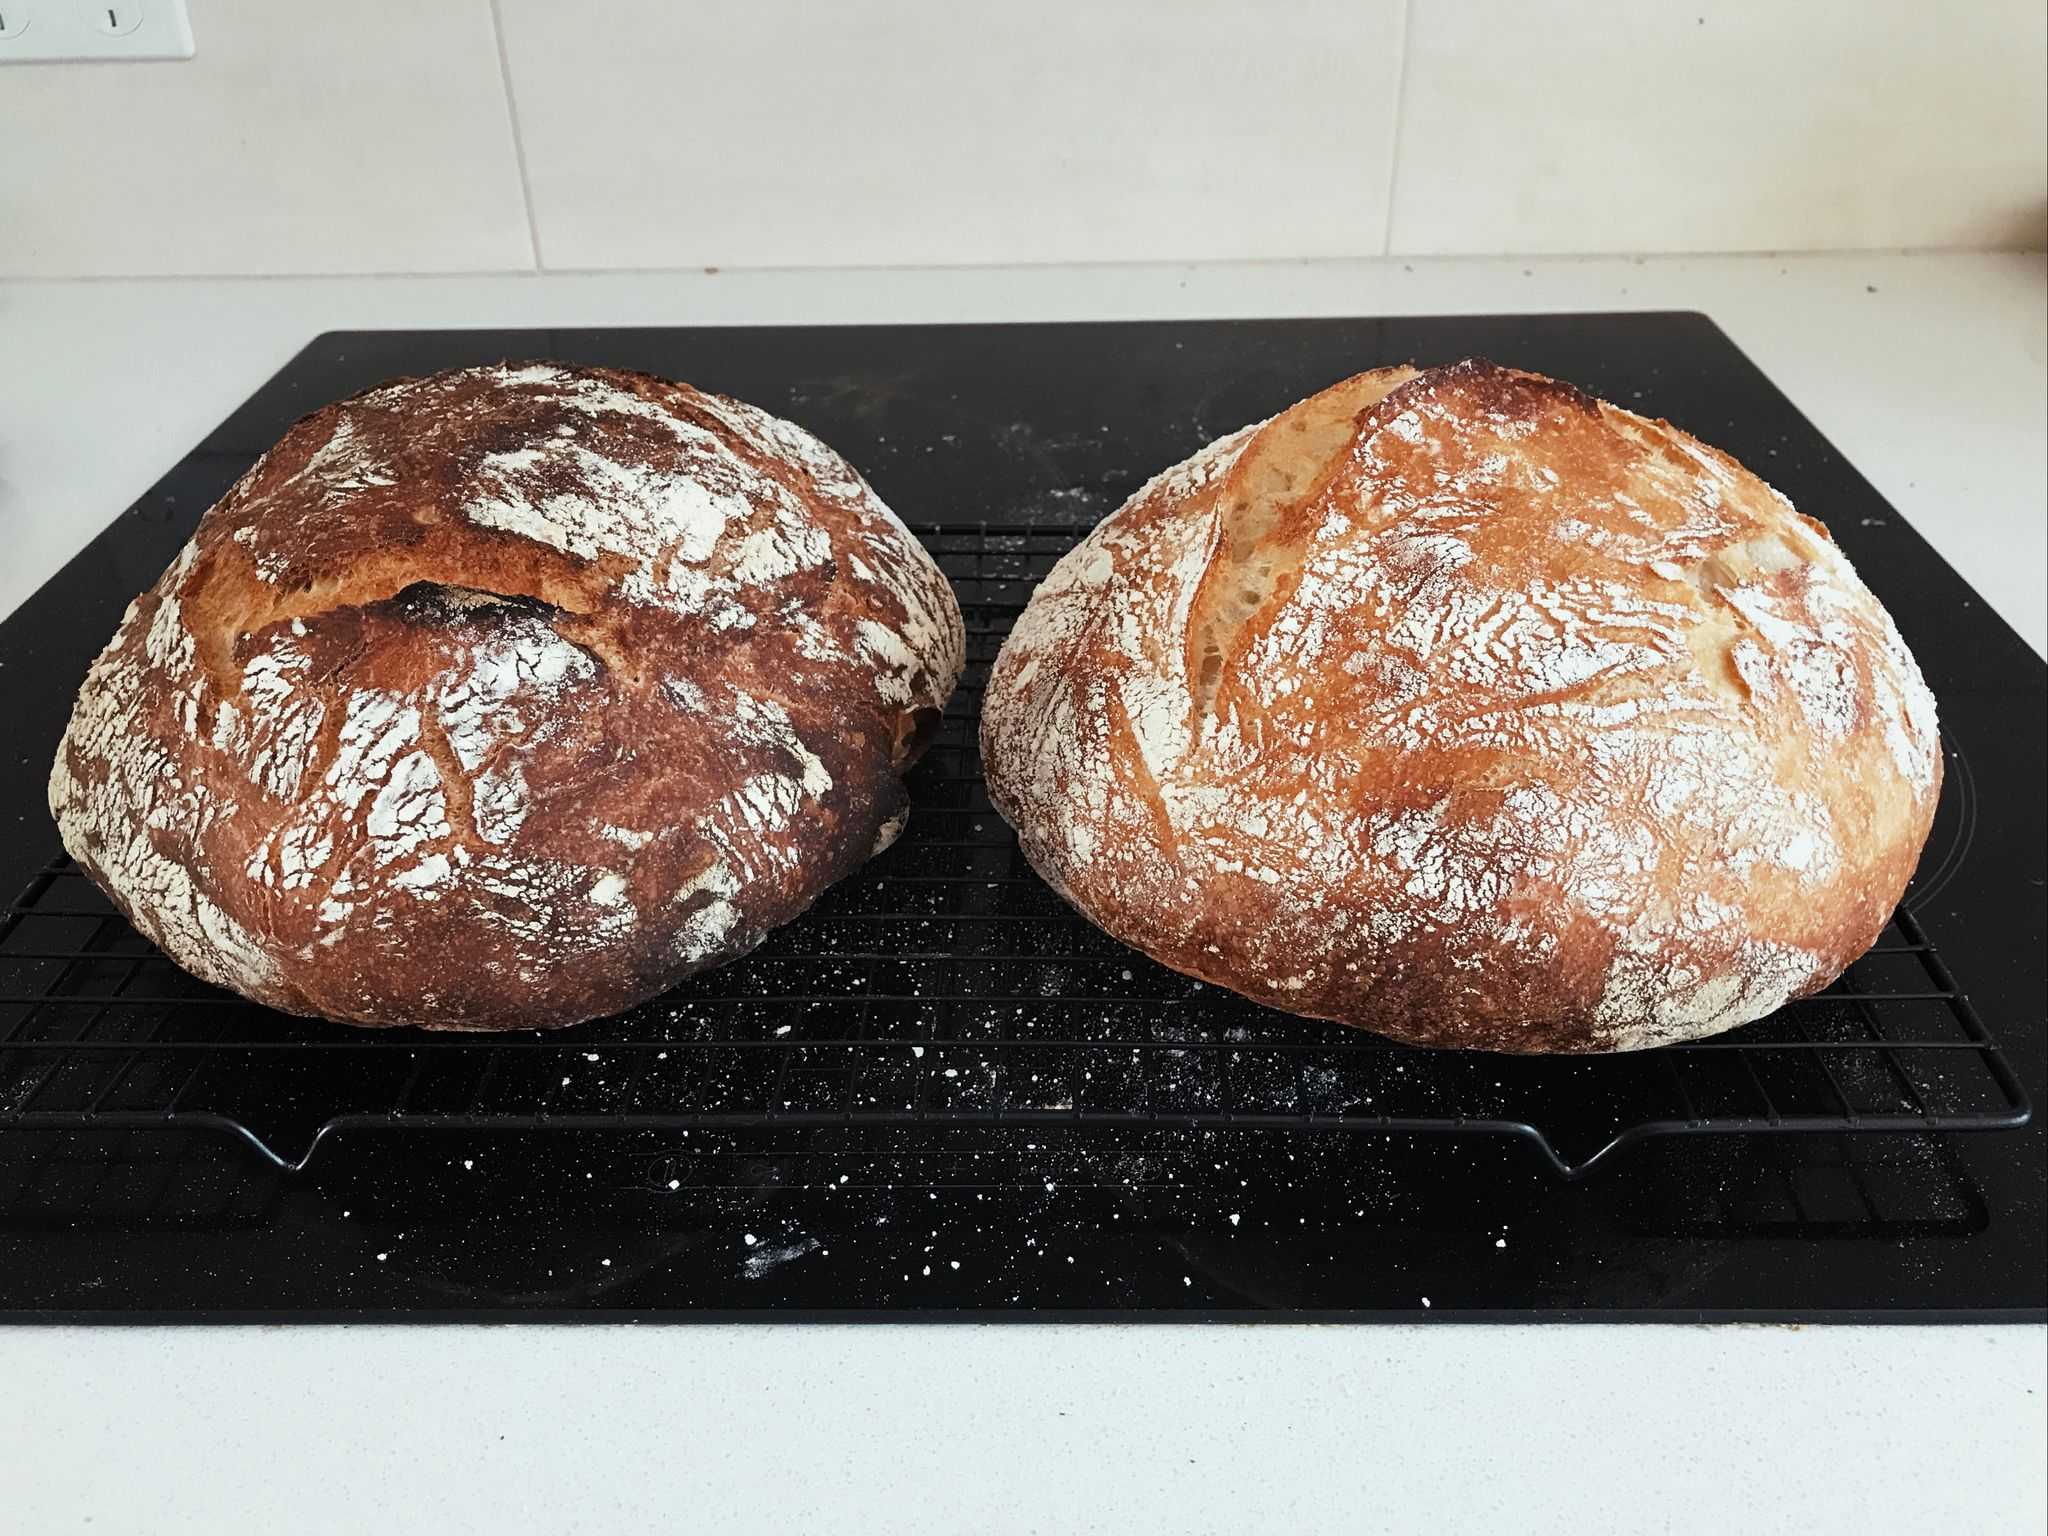 Two round loaves of bread on a cooling rack, the left one being noticeably browner than the right one.